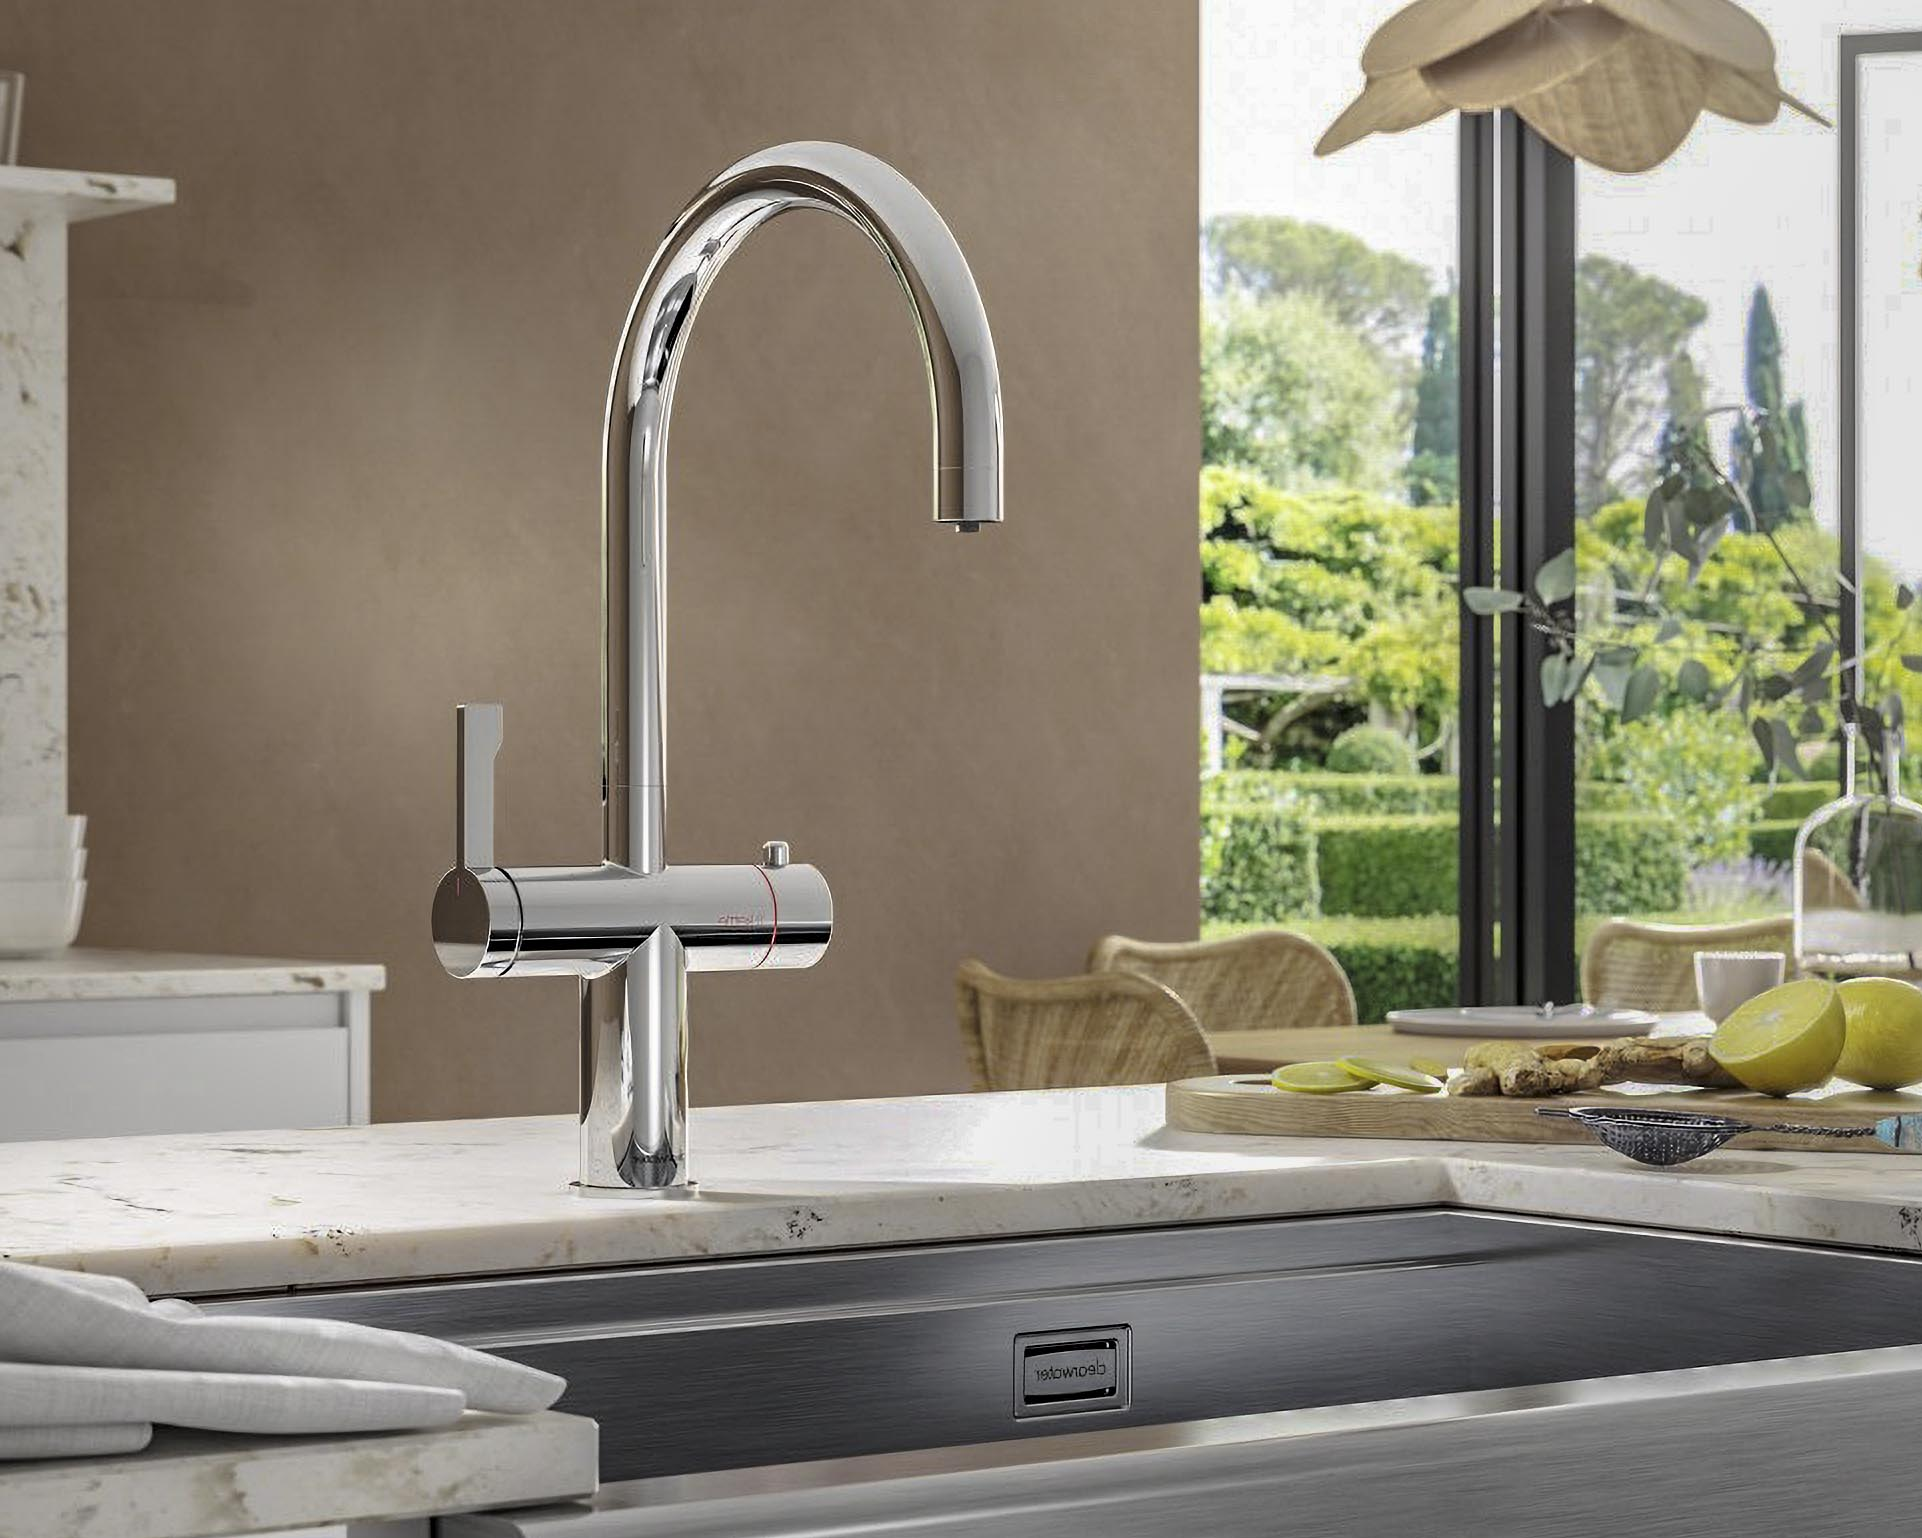 clearwater-magus-3-in-one-hot-water-kitchen-tap-chrome-c-Enhanced